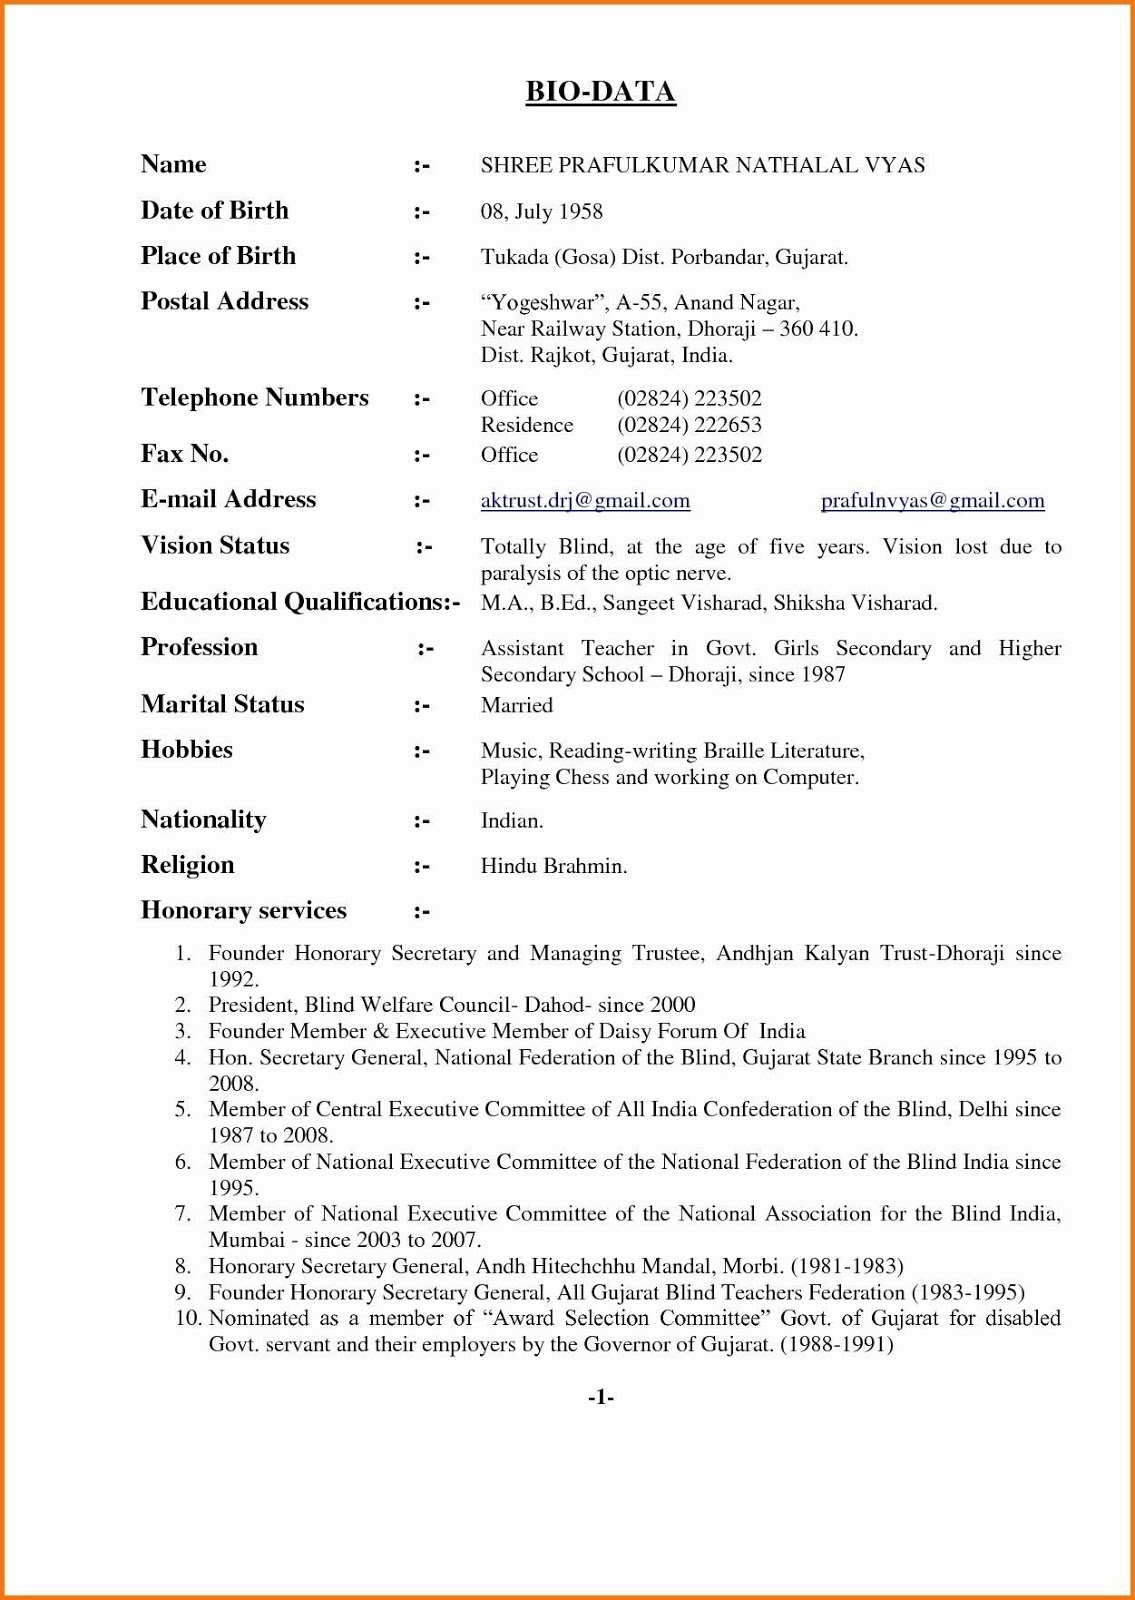 marriage resume format for boy marriage resume format for boy in english marriage resume format for boy word download marriage resume format for boy in word marriage resume format for boy pdf